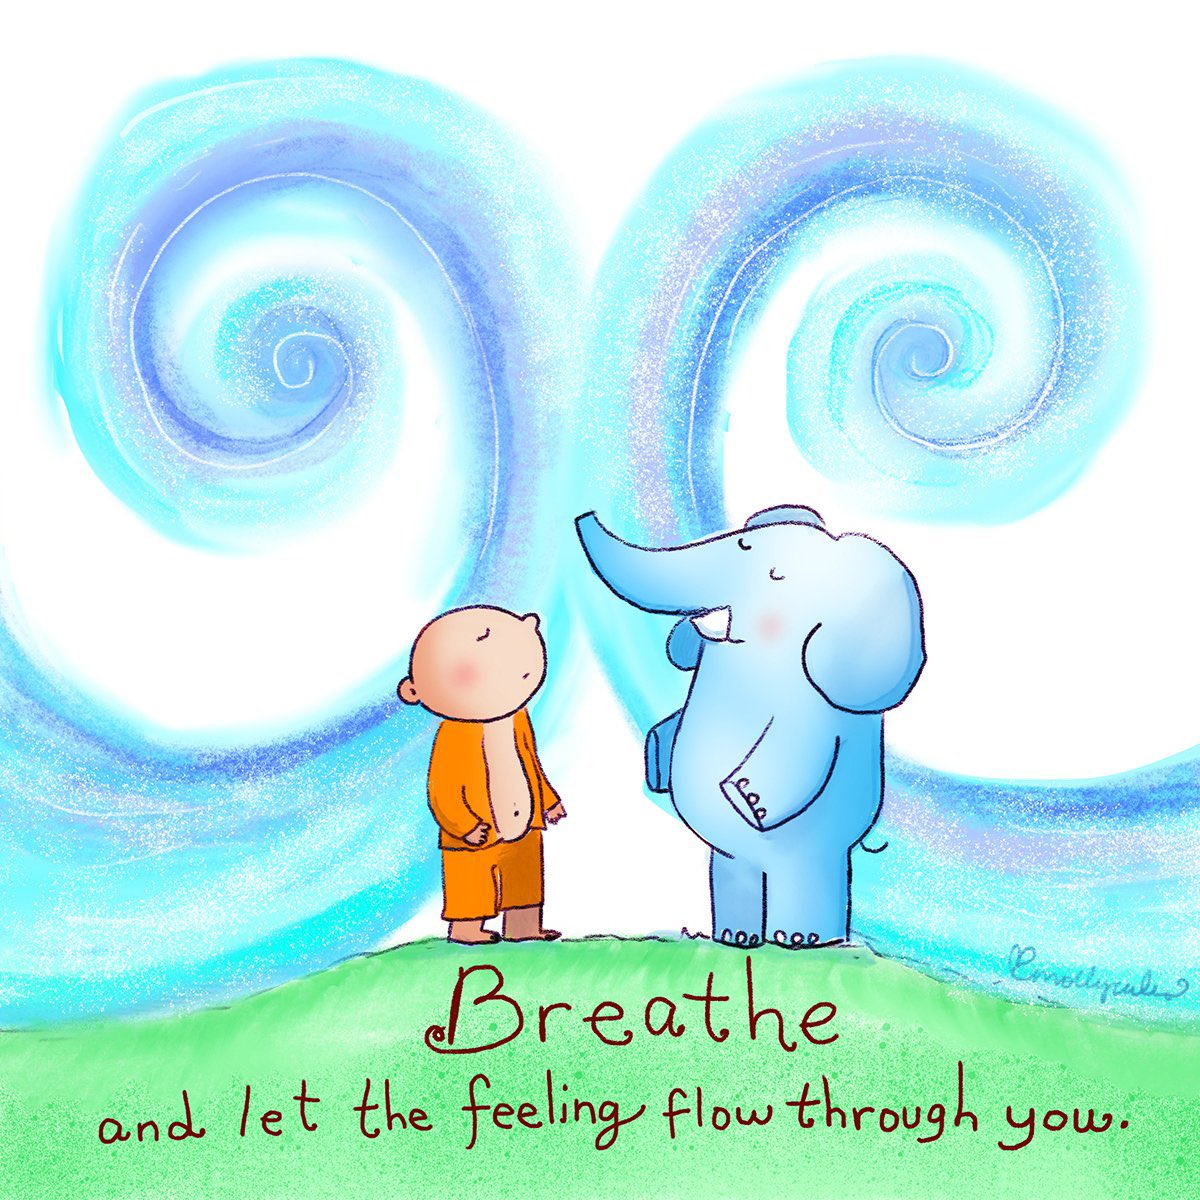 Today's lesson: Breathe and let the feeling flow through you. #breathe #breatheinbreatheout https://t.co/4wR3viEPBh